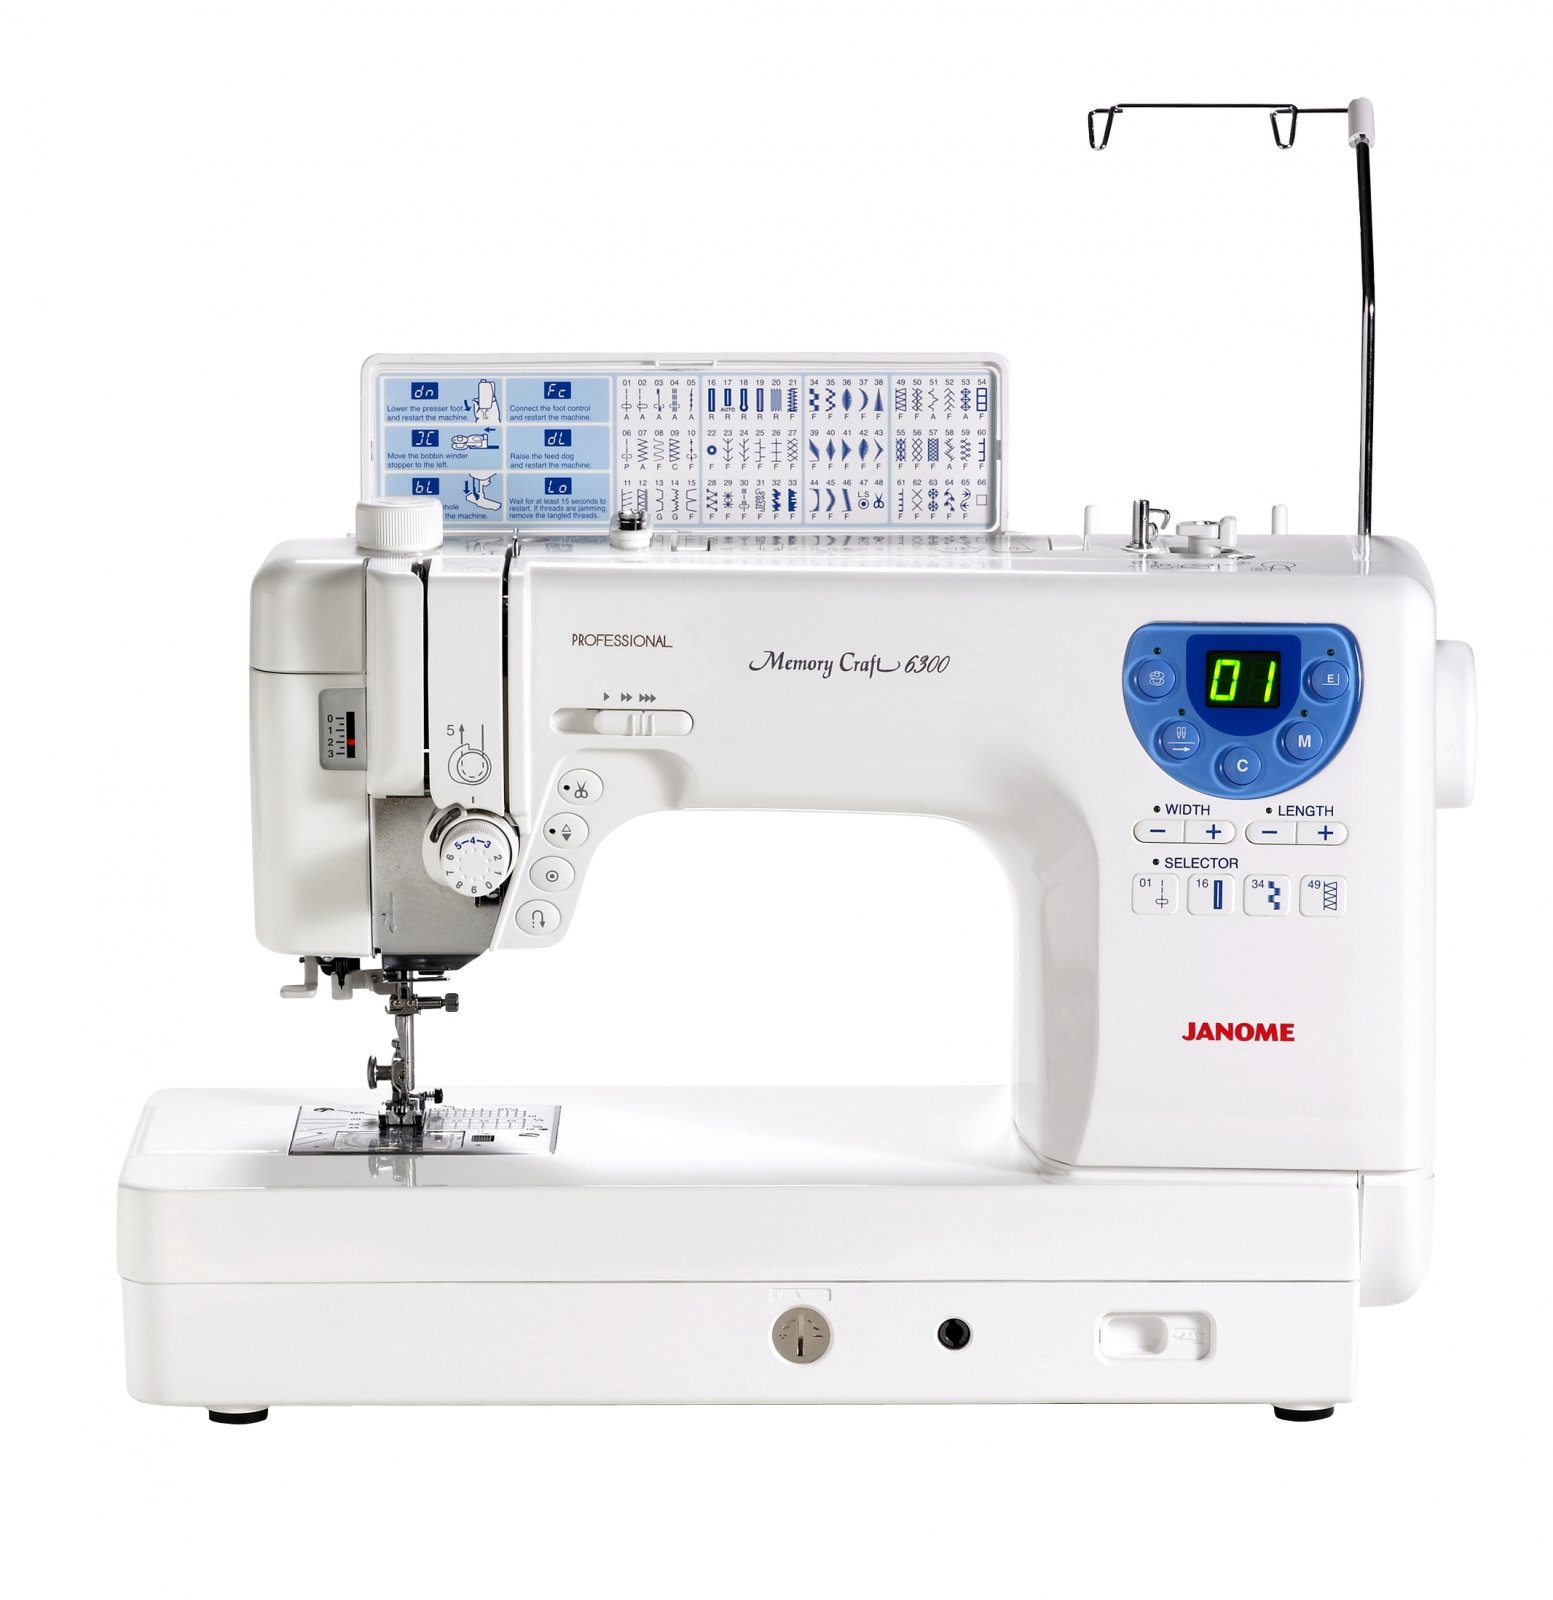 Janome MC6300 Sewing Machine